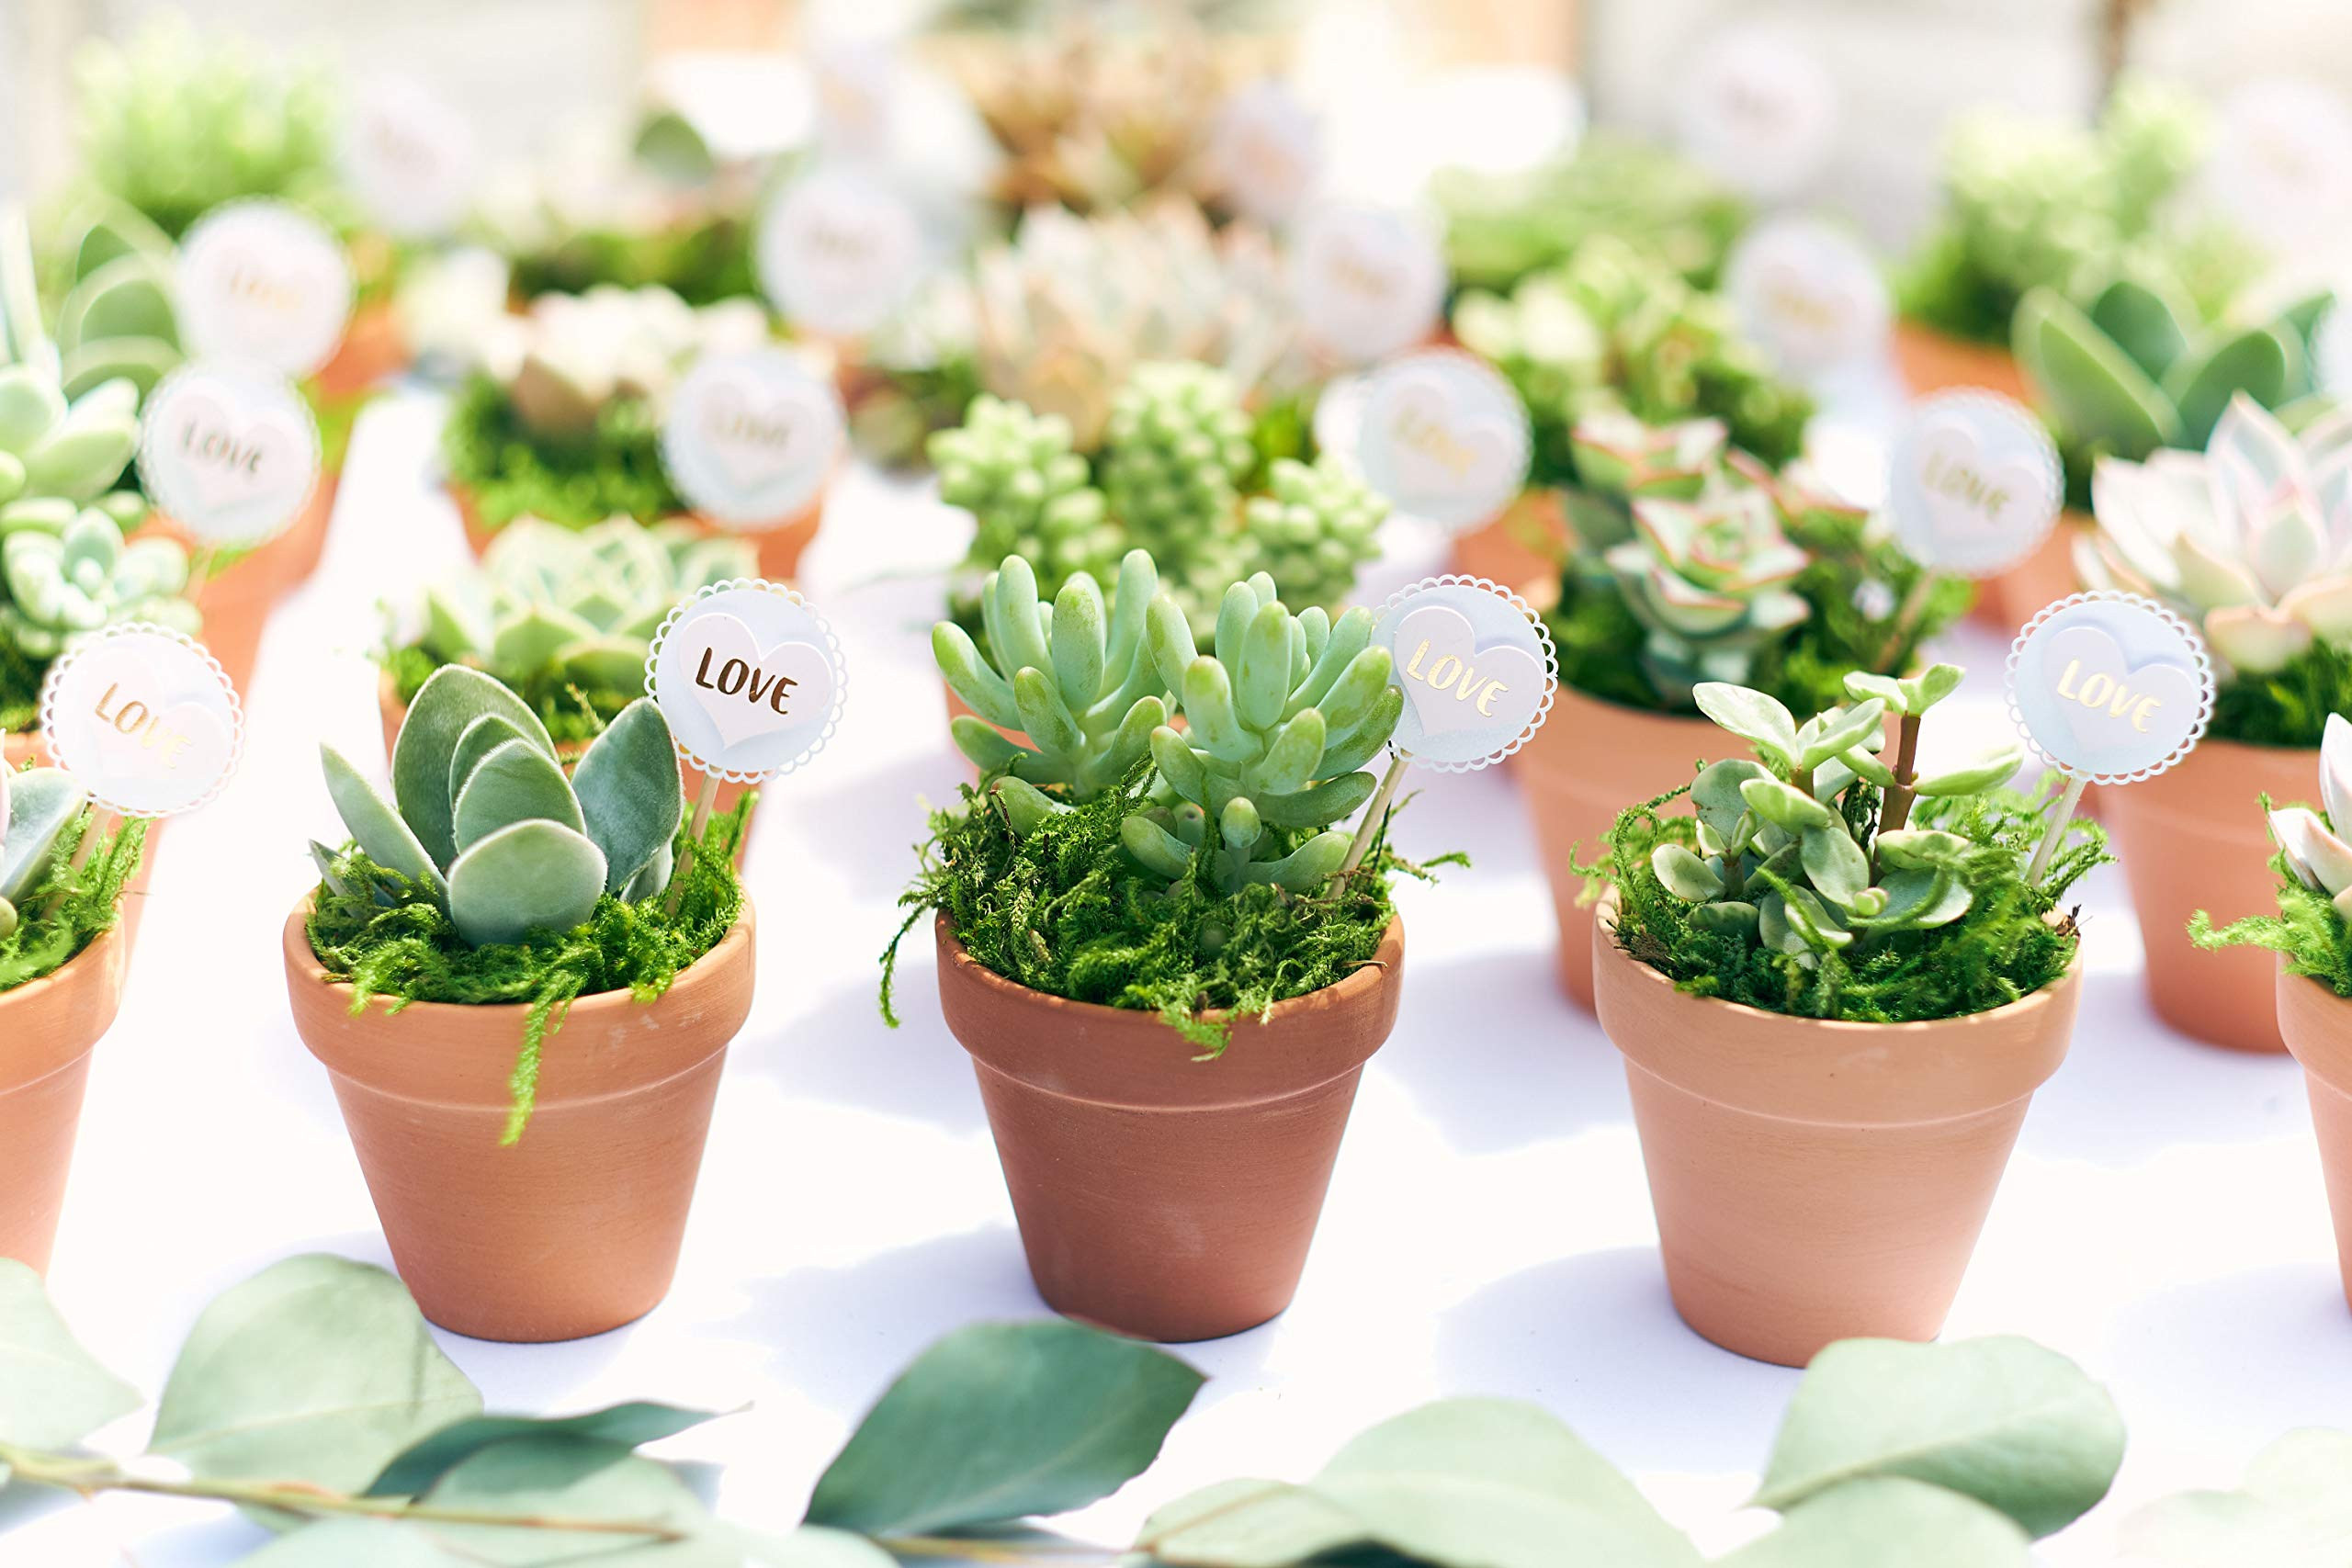 Shop Succulents  Premium Pastel Collection of LiveSucculent Plants, Hand Selected Variety Pack of Mini Succulents   Collection of 12 in 2'' pots by Shop Succulents (Image #5)